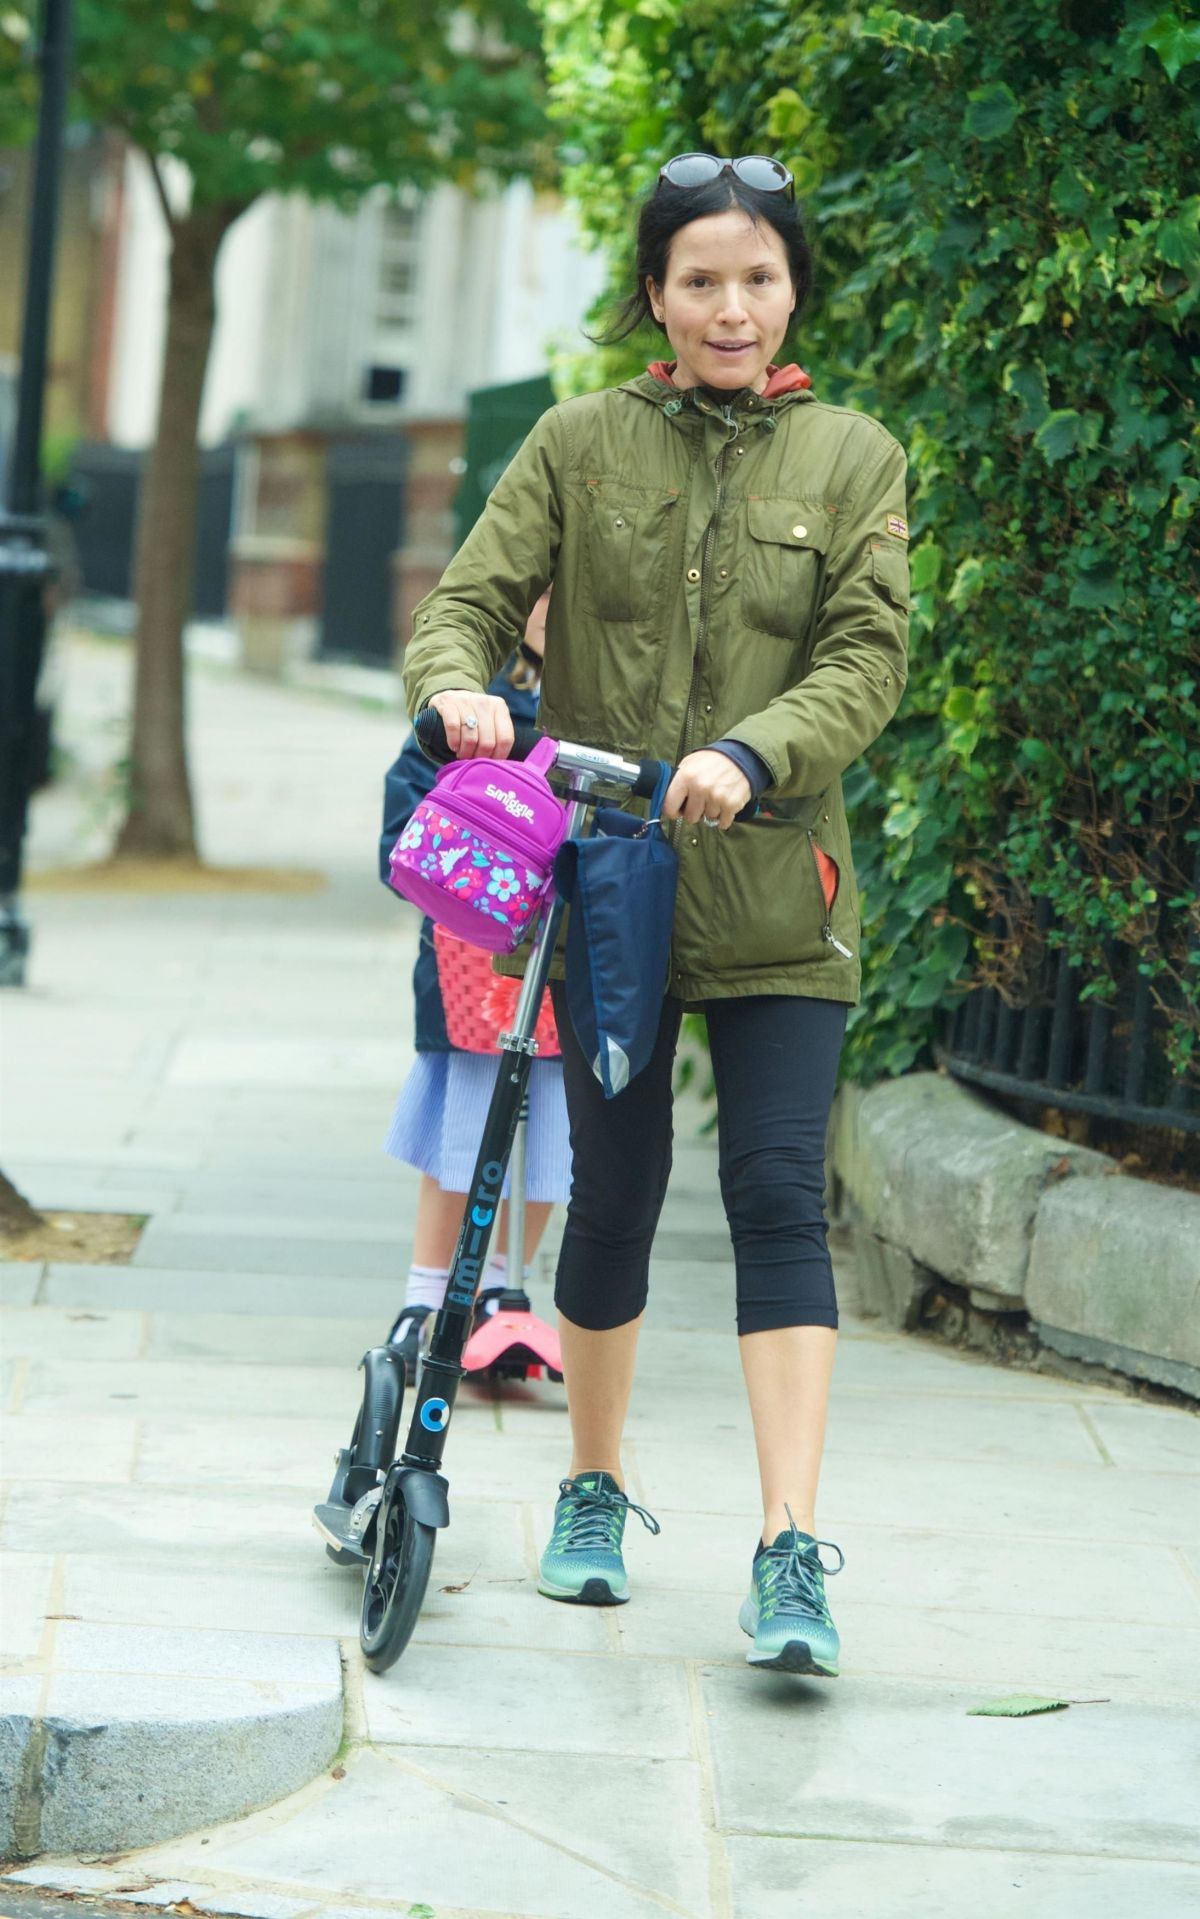 Andrea corr out shopping on kings road in chelsea 10022017 andrea corr out shopping on kings road in chelsea 10022017 altavistaventures Image collections